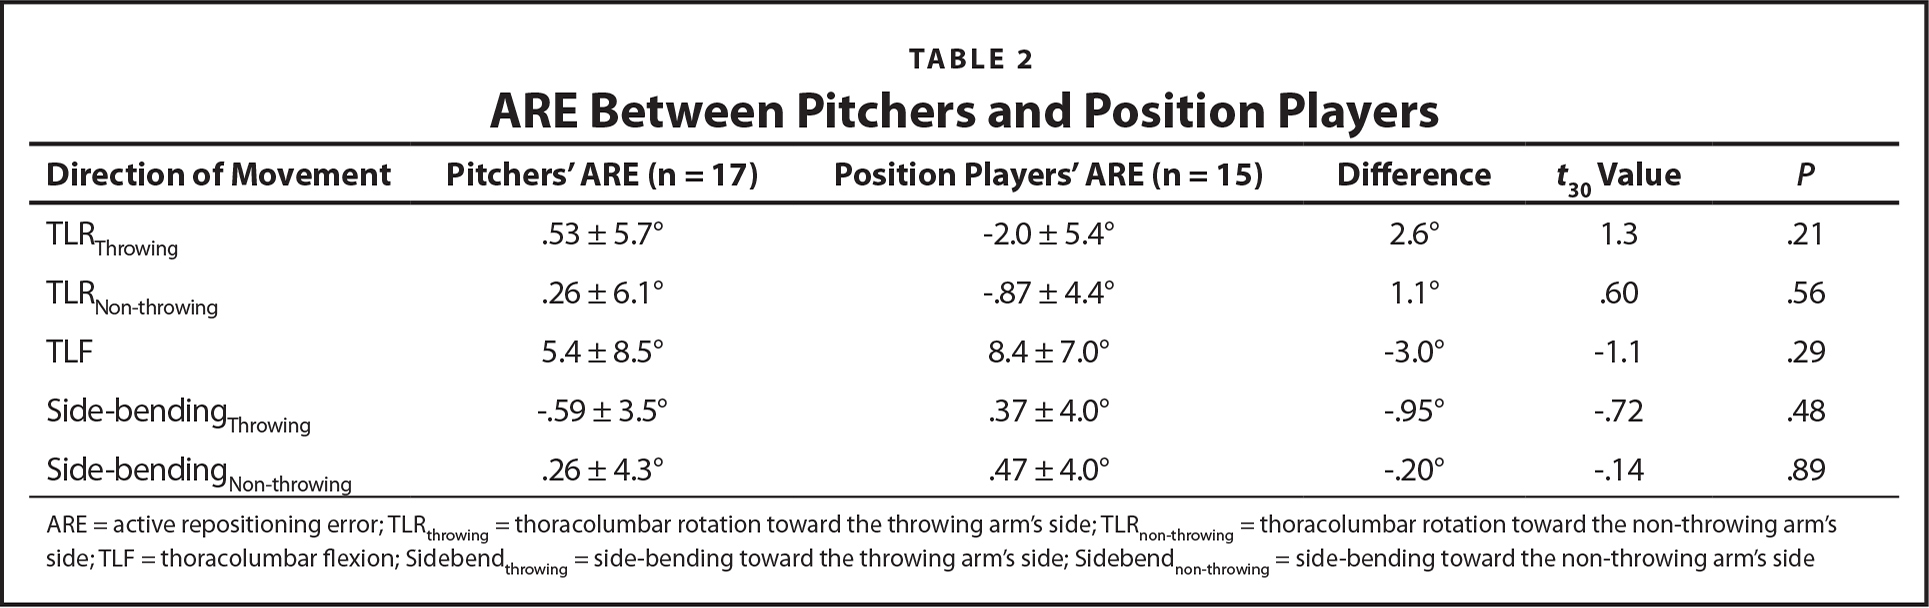 ARE Between Pitchers and Position Players